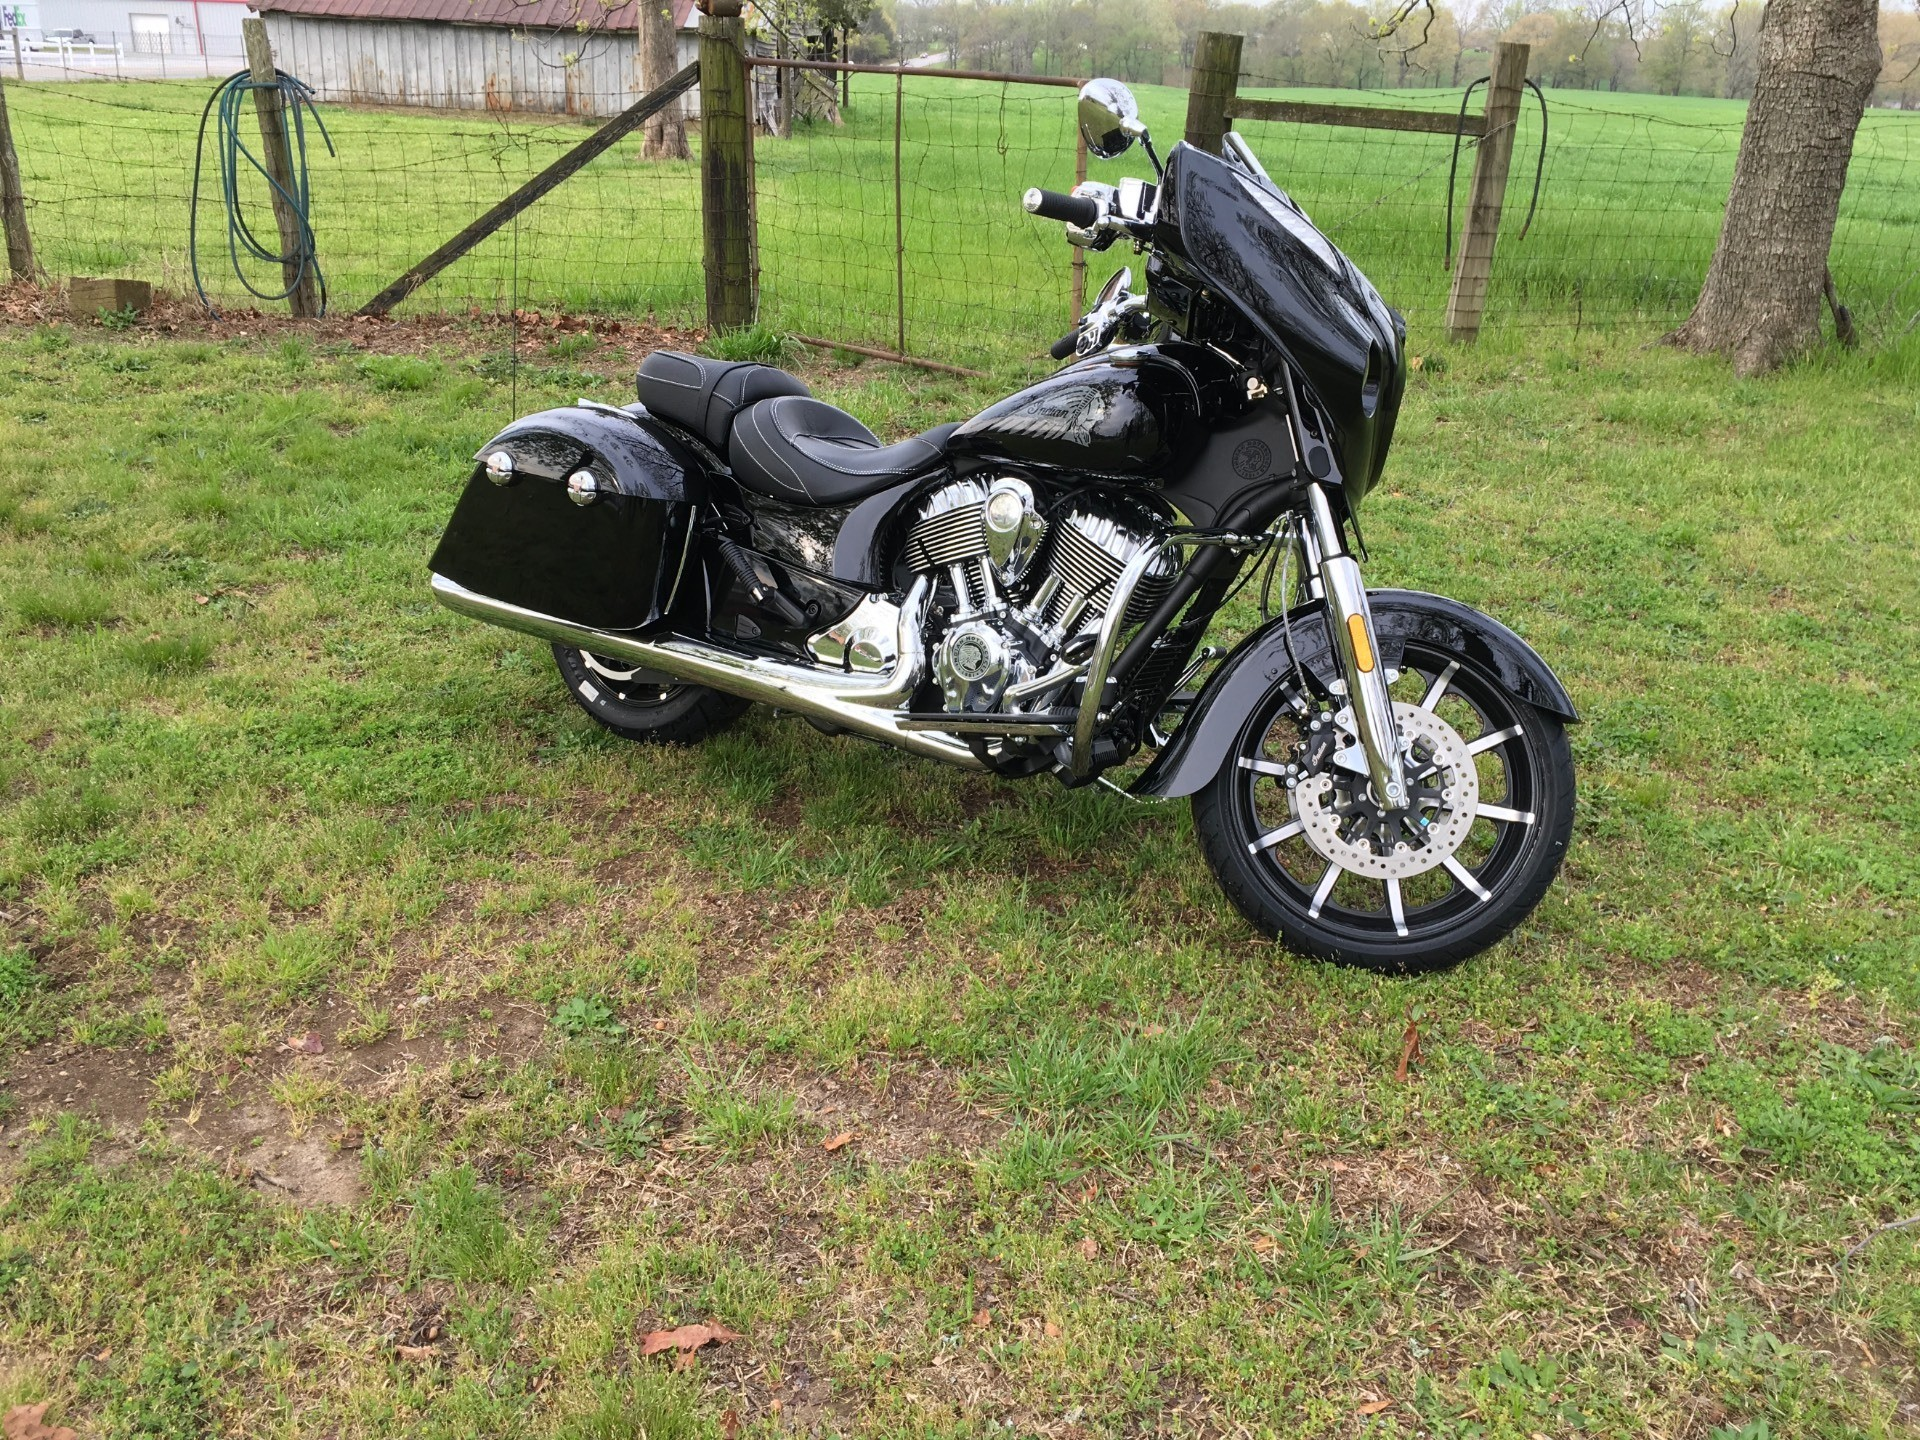 2017 Indian Chieftain Limited 1